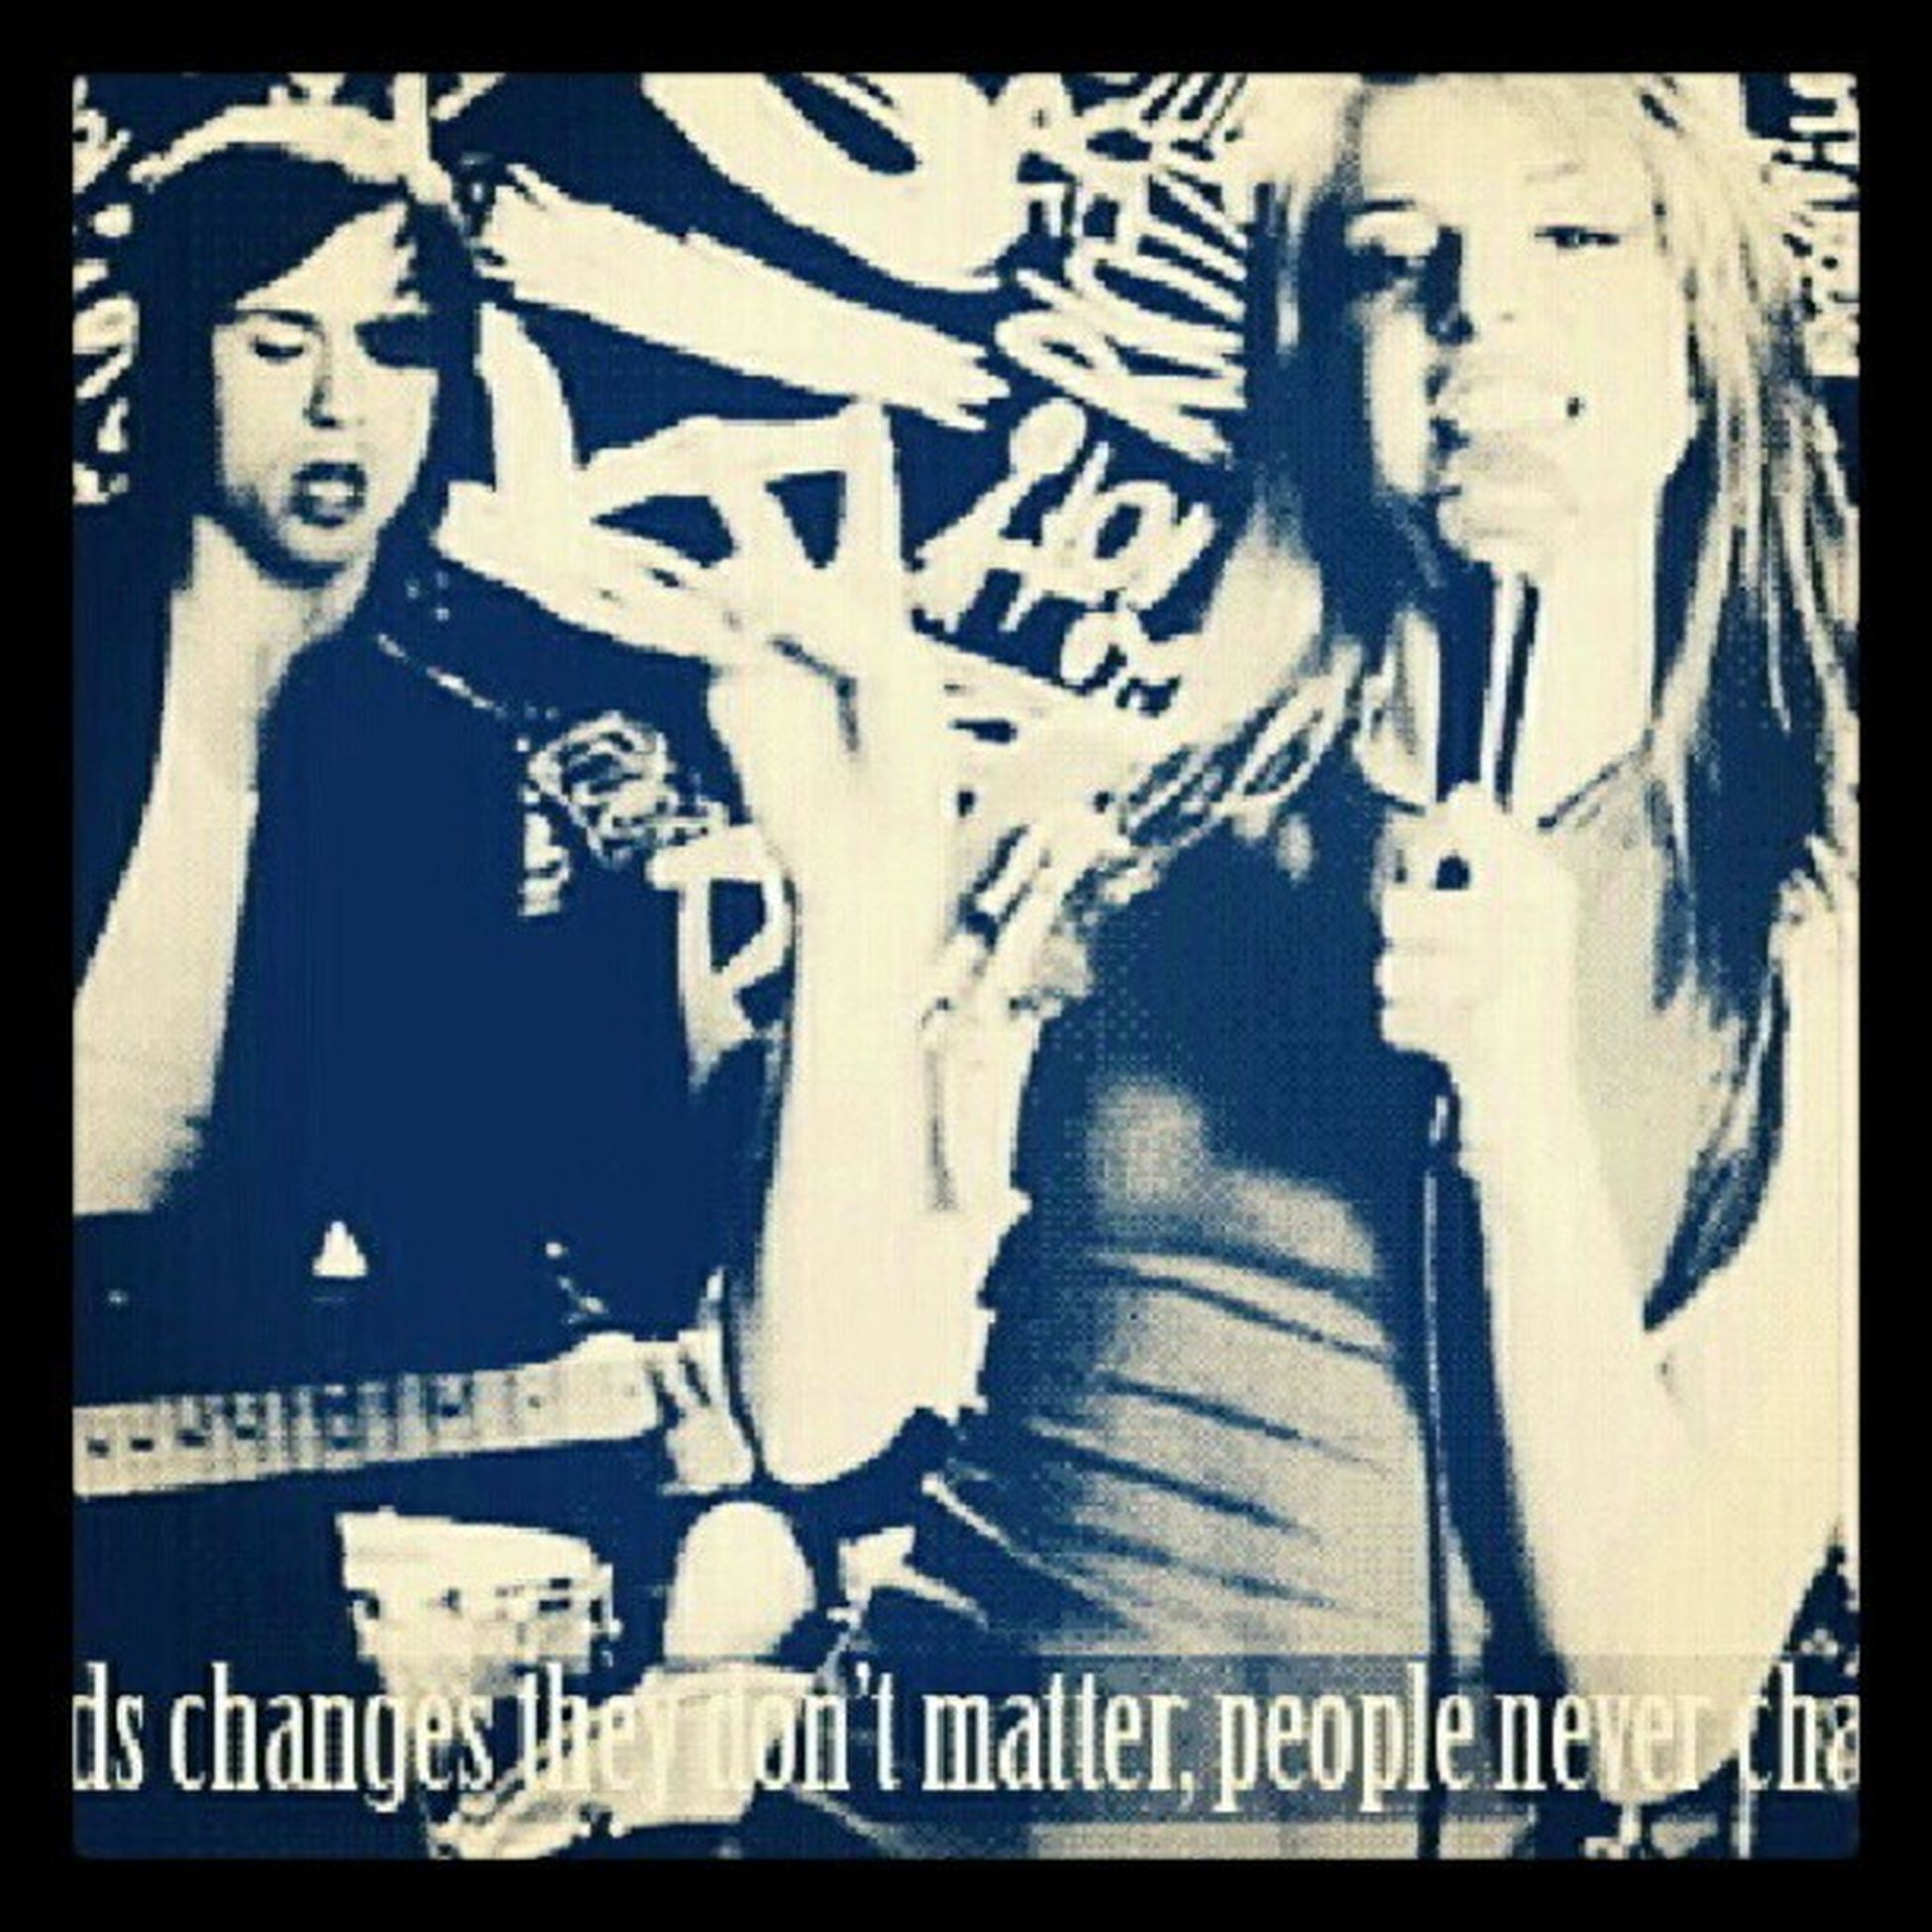 PARAMORE part 1: Second chances they don't matter, people never change. Truth Instasunday Instaquote Instaquotesunday